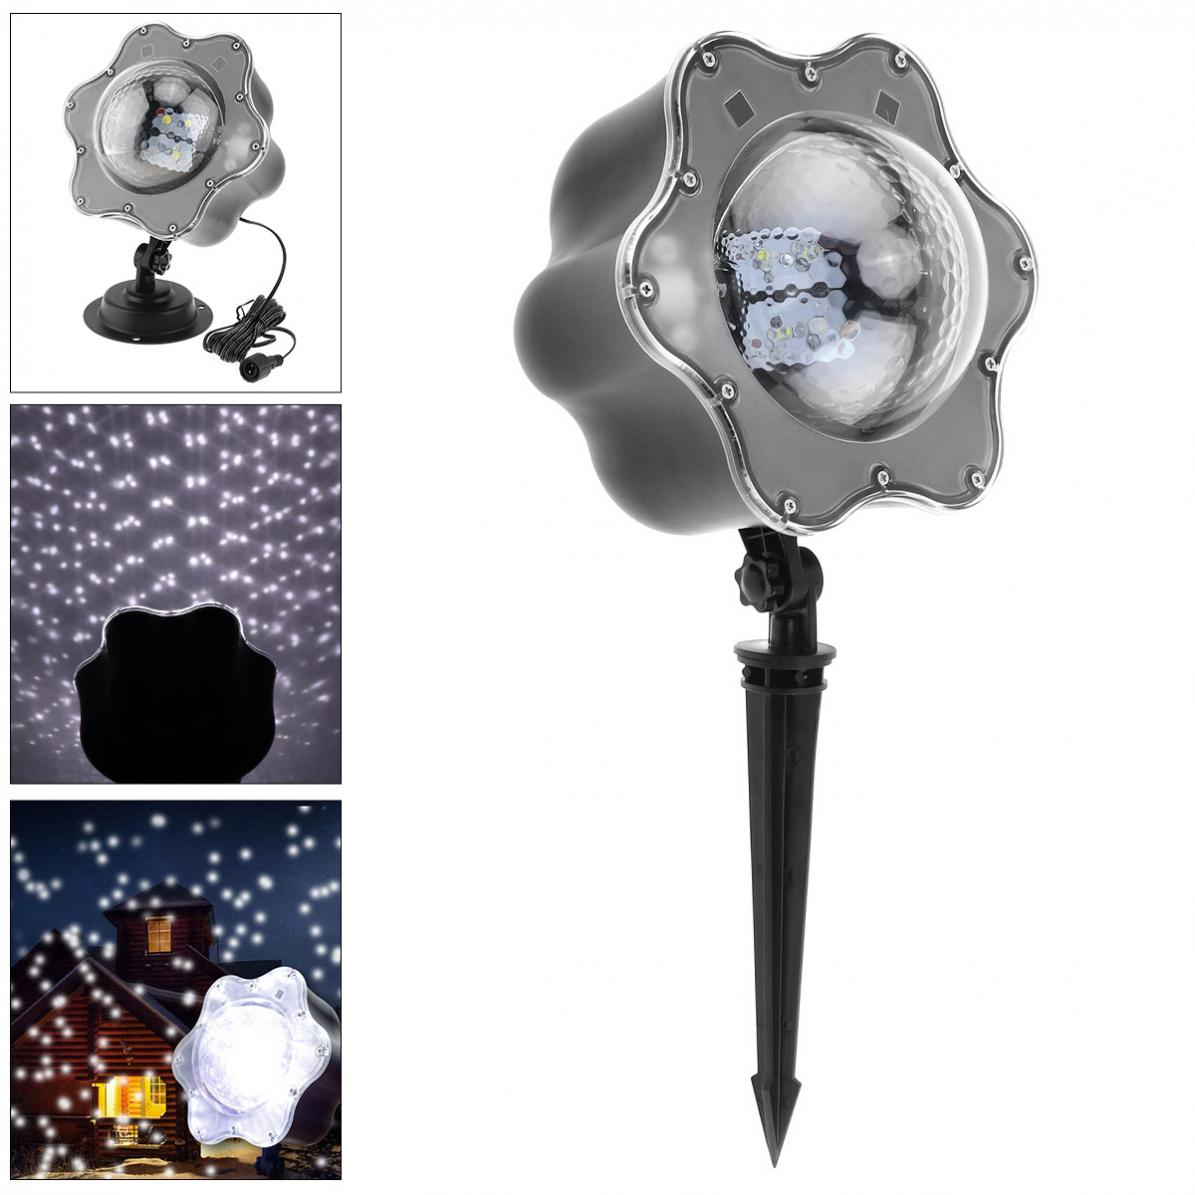 Sale 4W Indoor / Outdoor Waterproof Snow Projector Lamp with Remote Control and Ground Stake for Christmas / Holiday Decoration